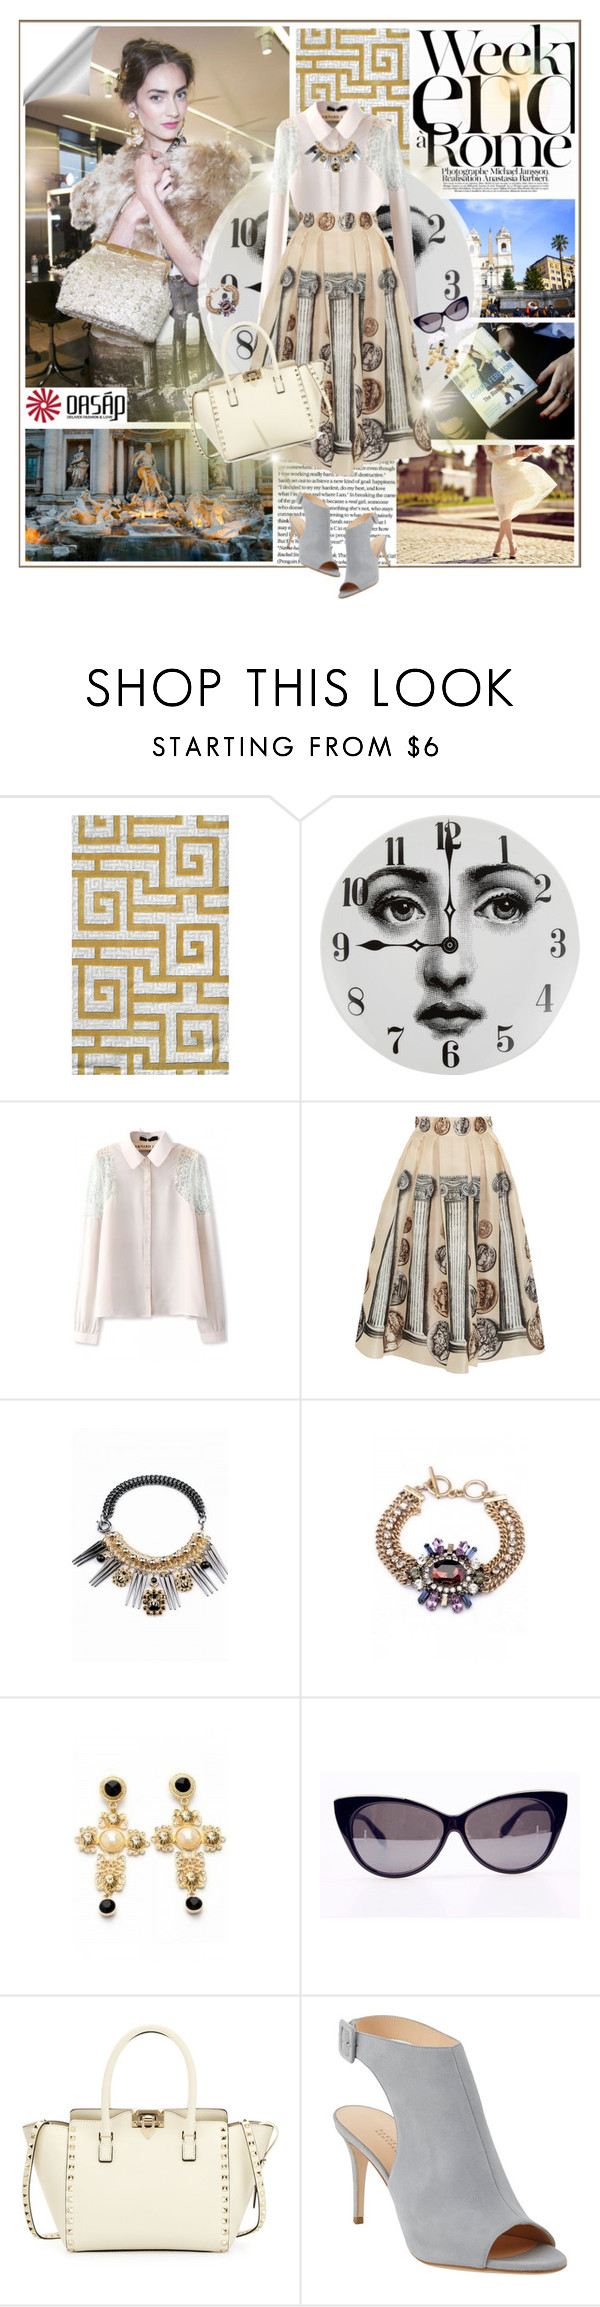 """OASAP Love Rome 2"" by undici ❤ liked on Polyvore featuring LARA, Fountain, Dolce&Gabbana, Fornasetti, Valentino and Barneys New York"